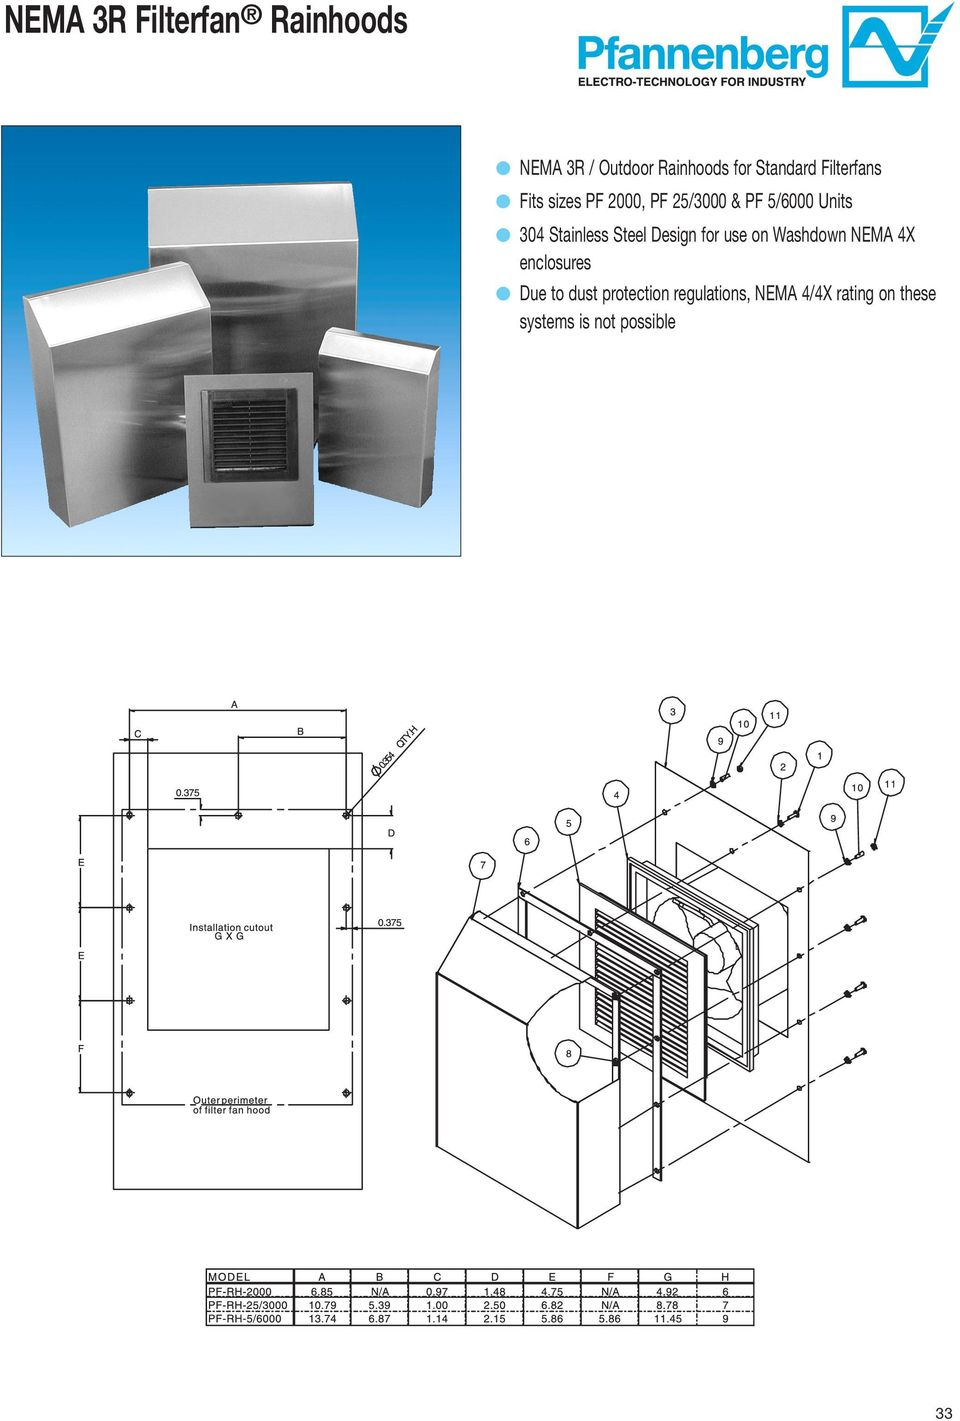 Stainless Steel Design for use on Washdown NEMA 4X enclosures Due to